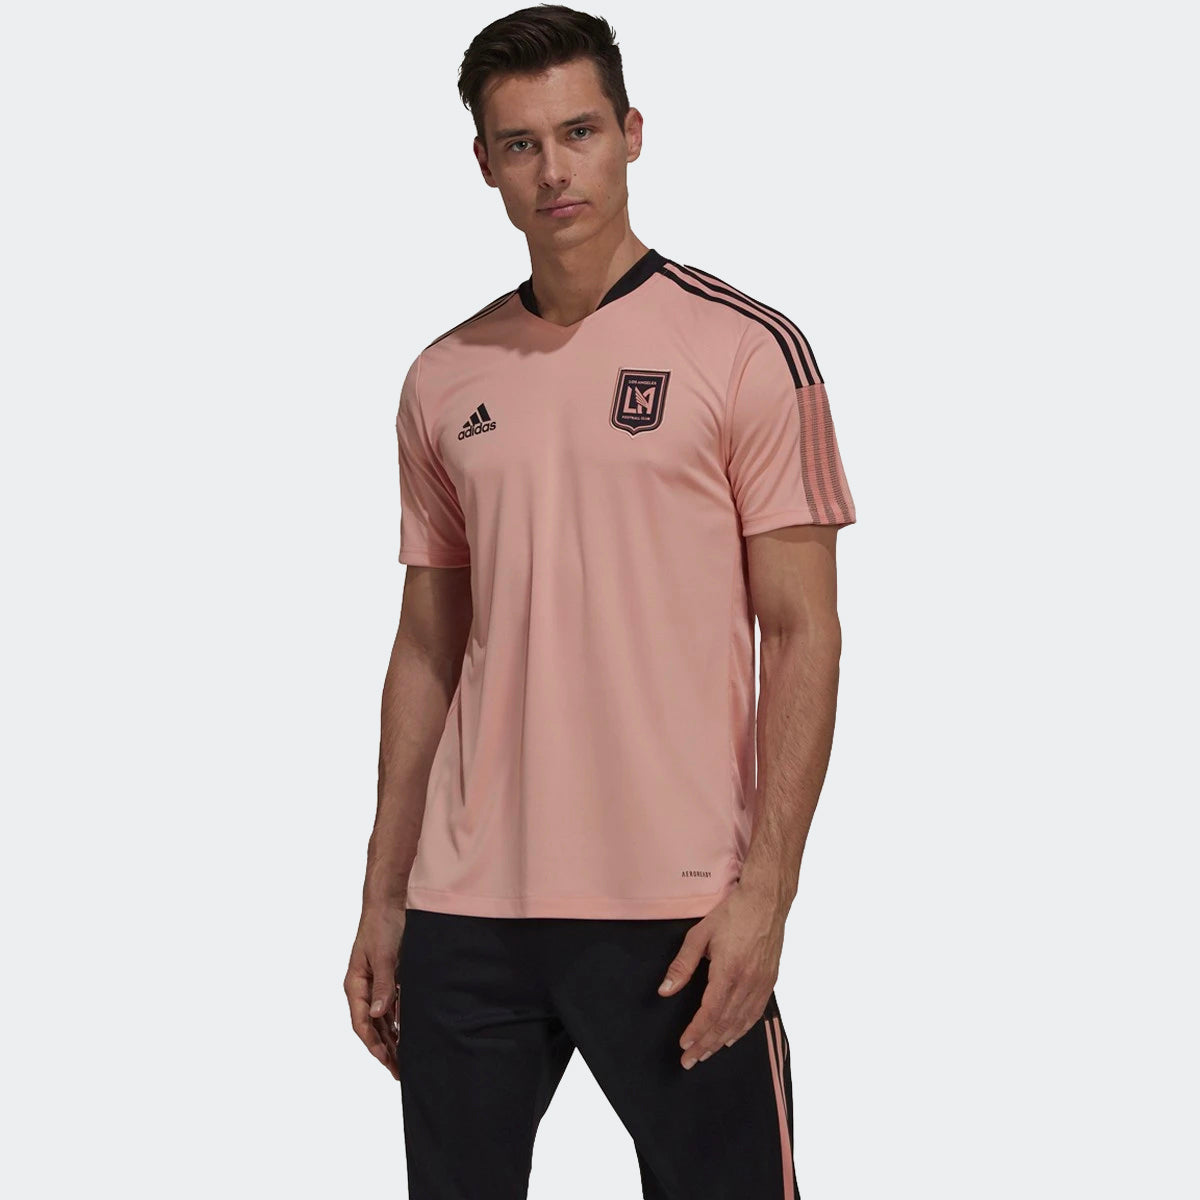 LAFC Training Top 21/22